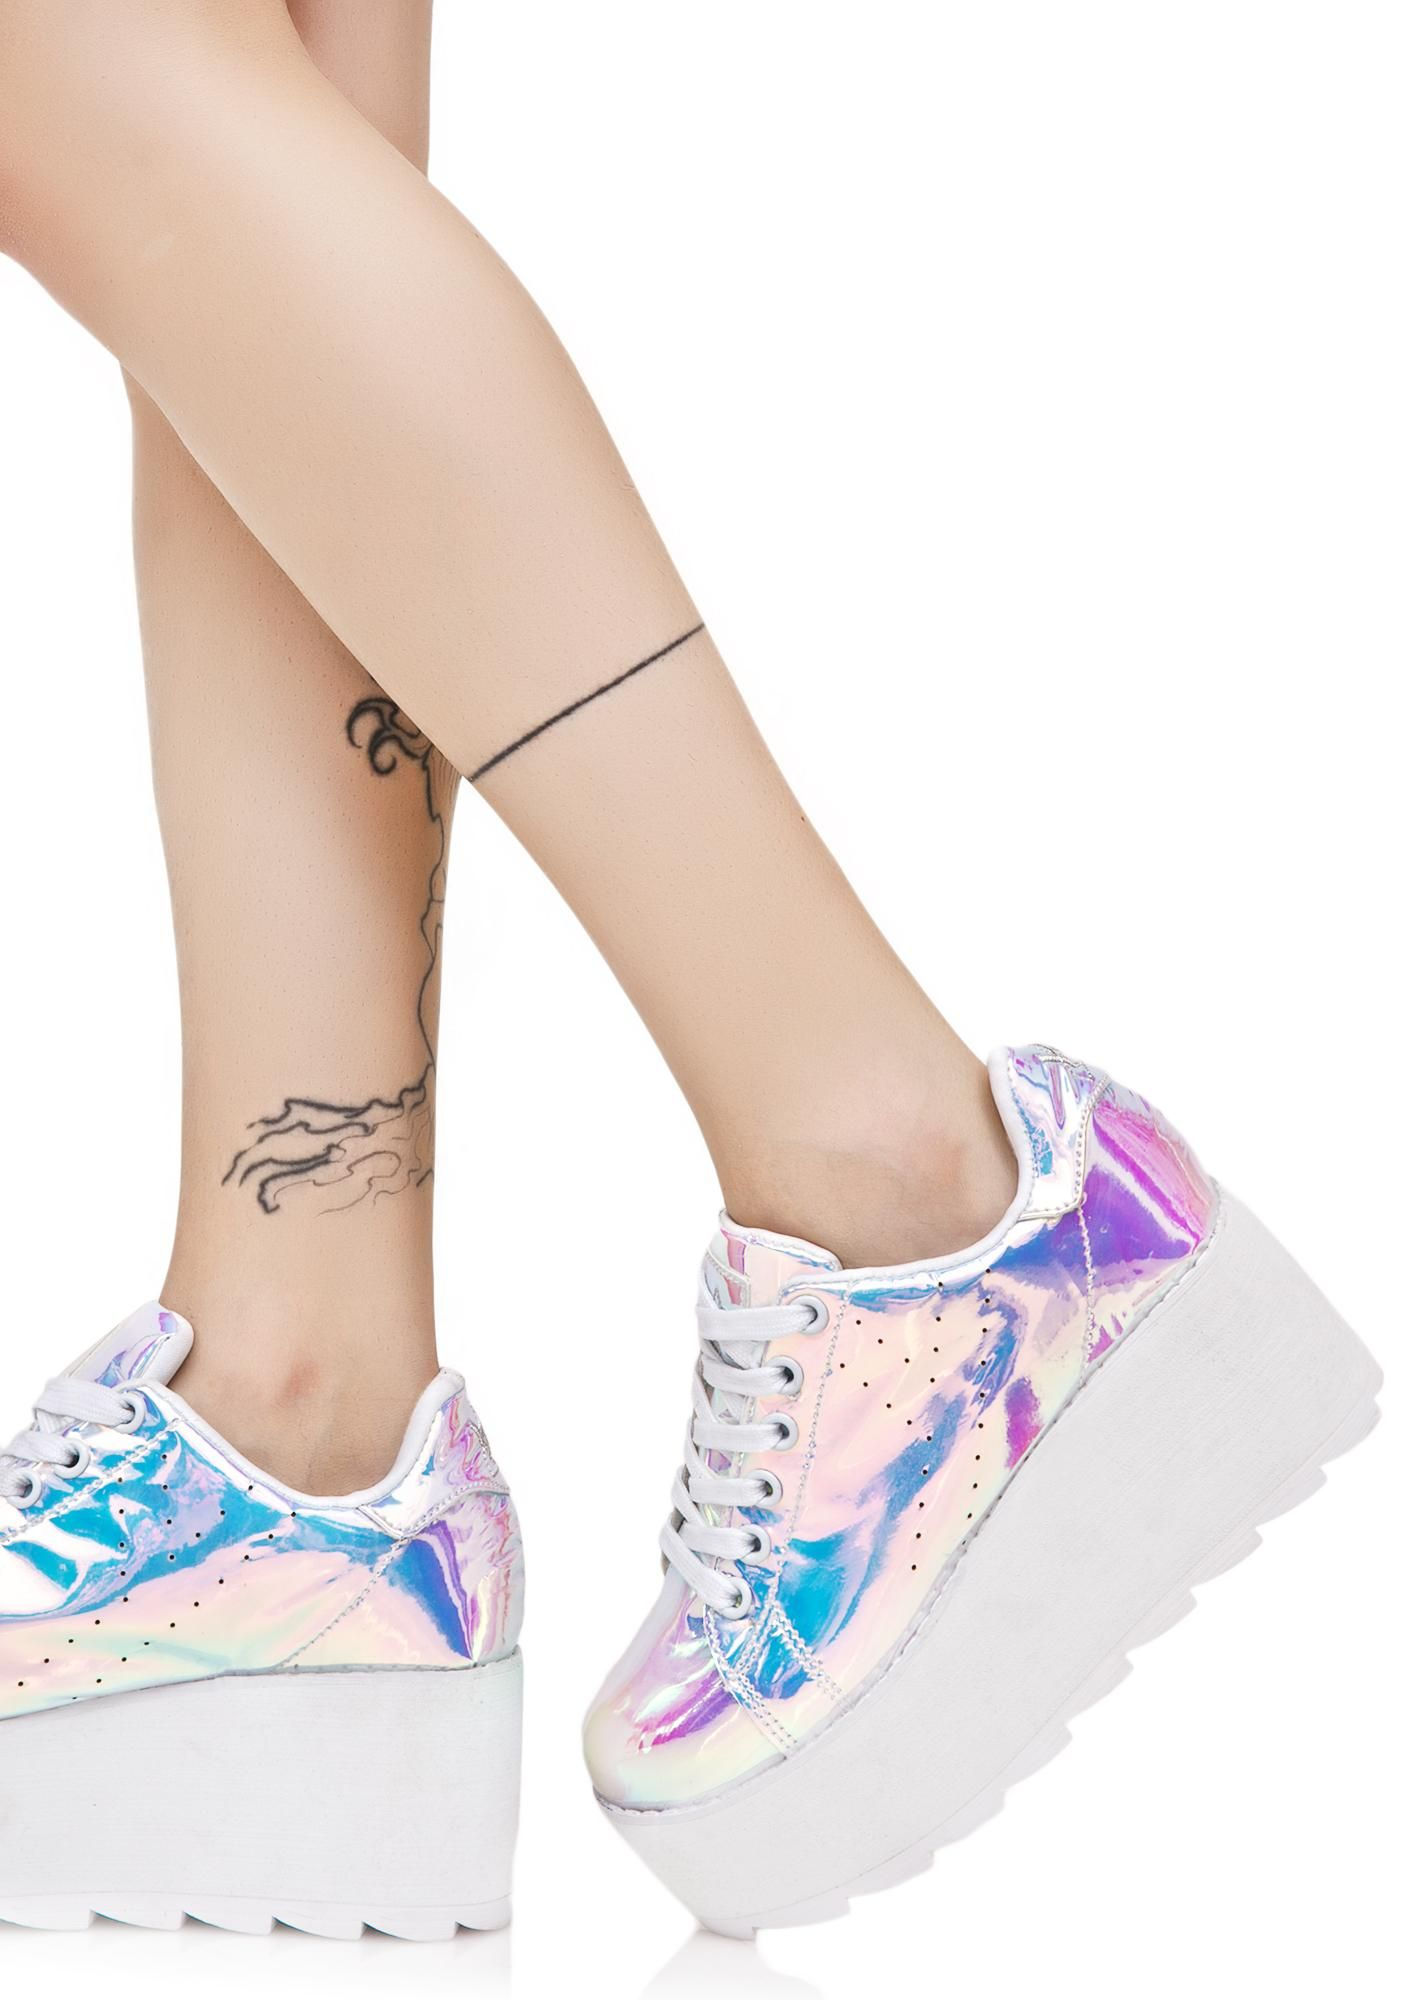 c160030877b73 Lala Atlantis Platform Sneakers in 2019 | Shoes! | Platform sneakers ...